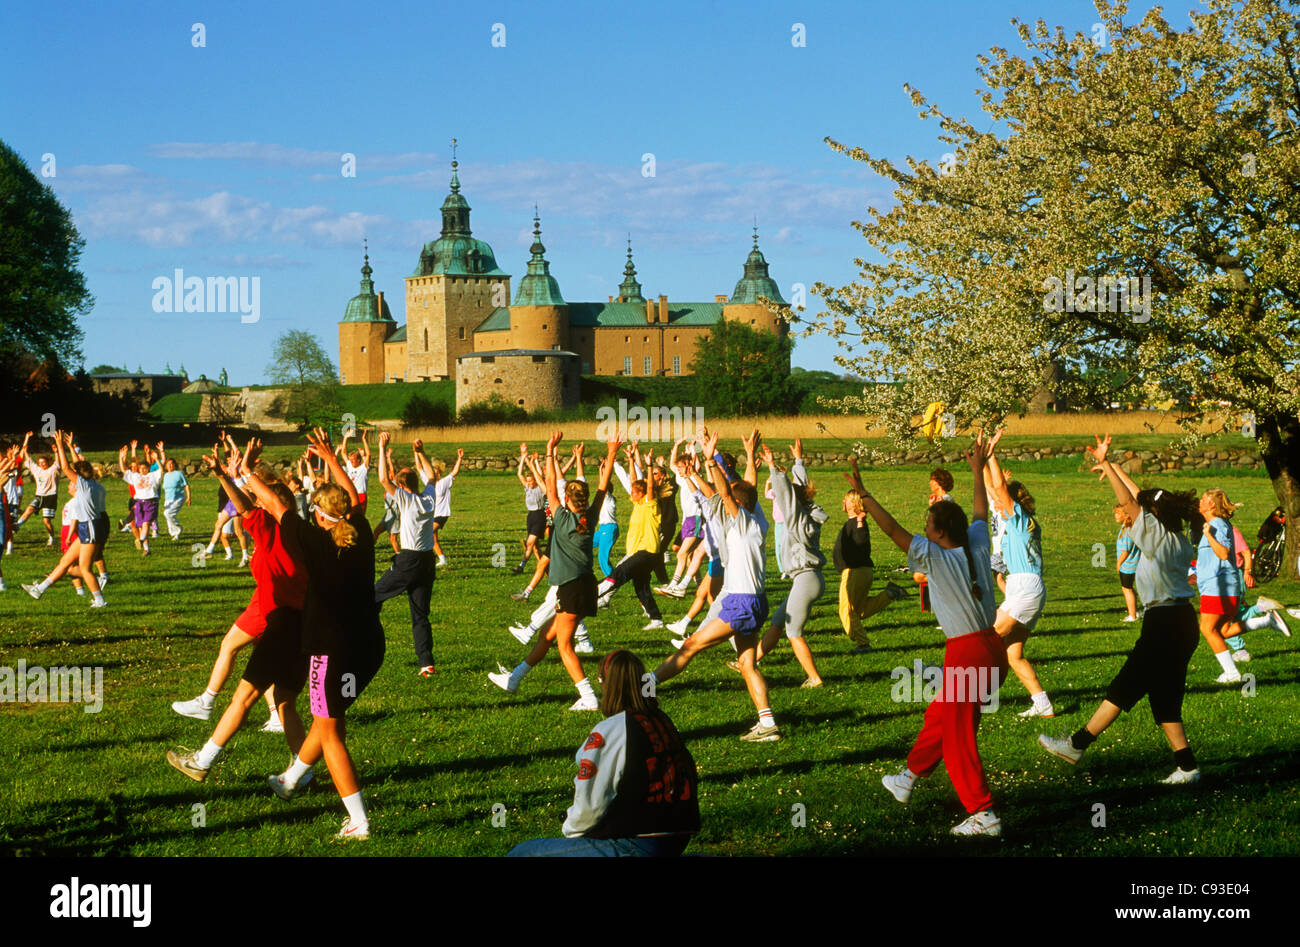 Outdoor exercise and aerobic classes near Kalmar Castle in city of Kalmar in the province of Småland in Sweden. Stock Photo